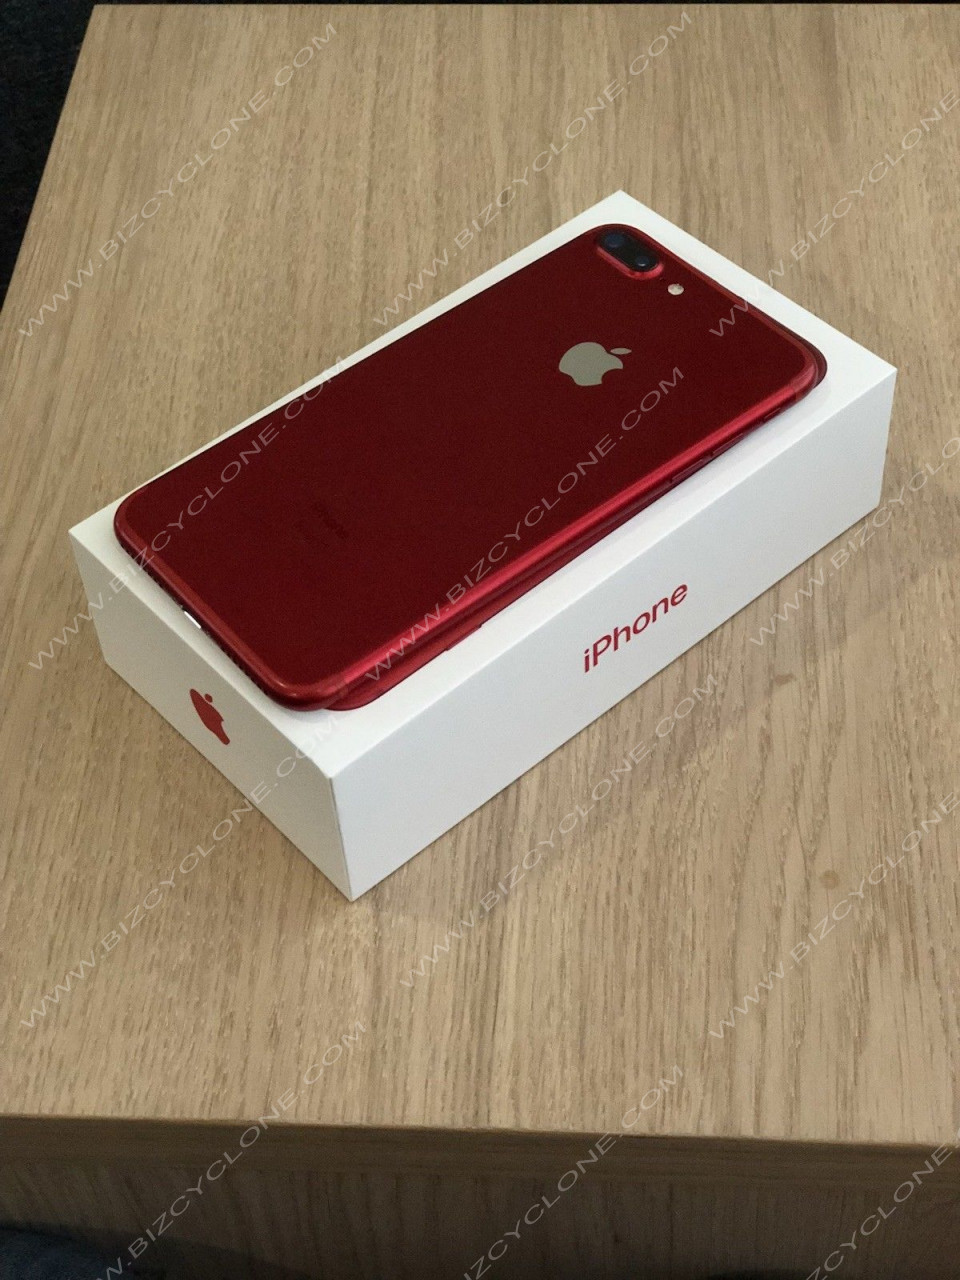 APPLE IPHONE 7 PLUS 4G PHONE 256GB RED SAMSUNG GALAXY S8 256G